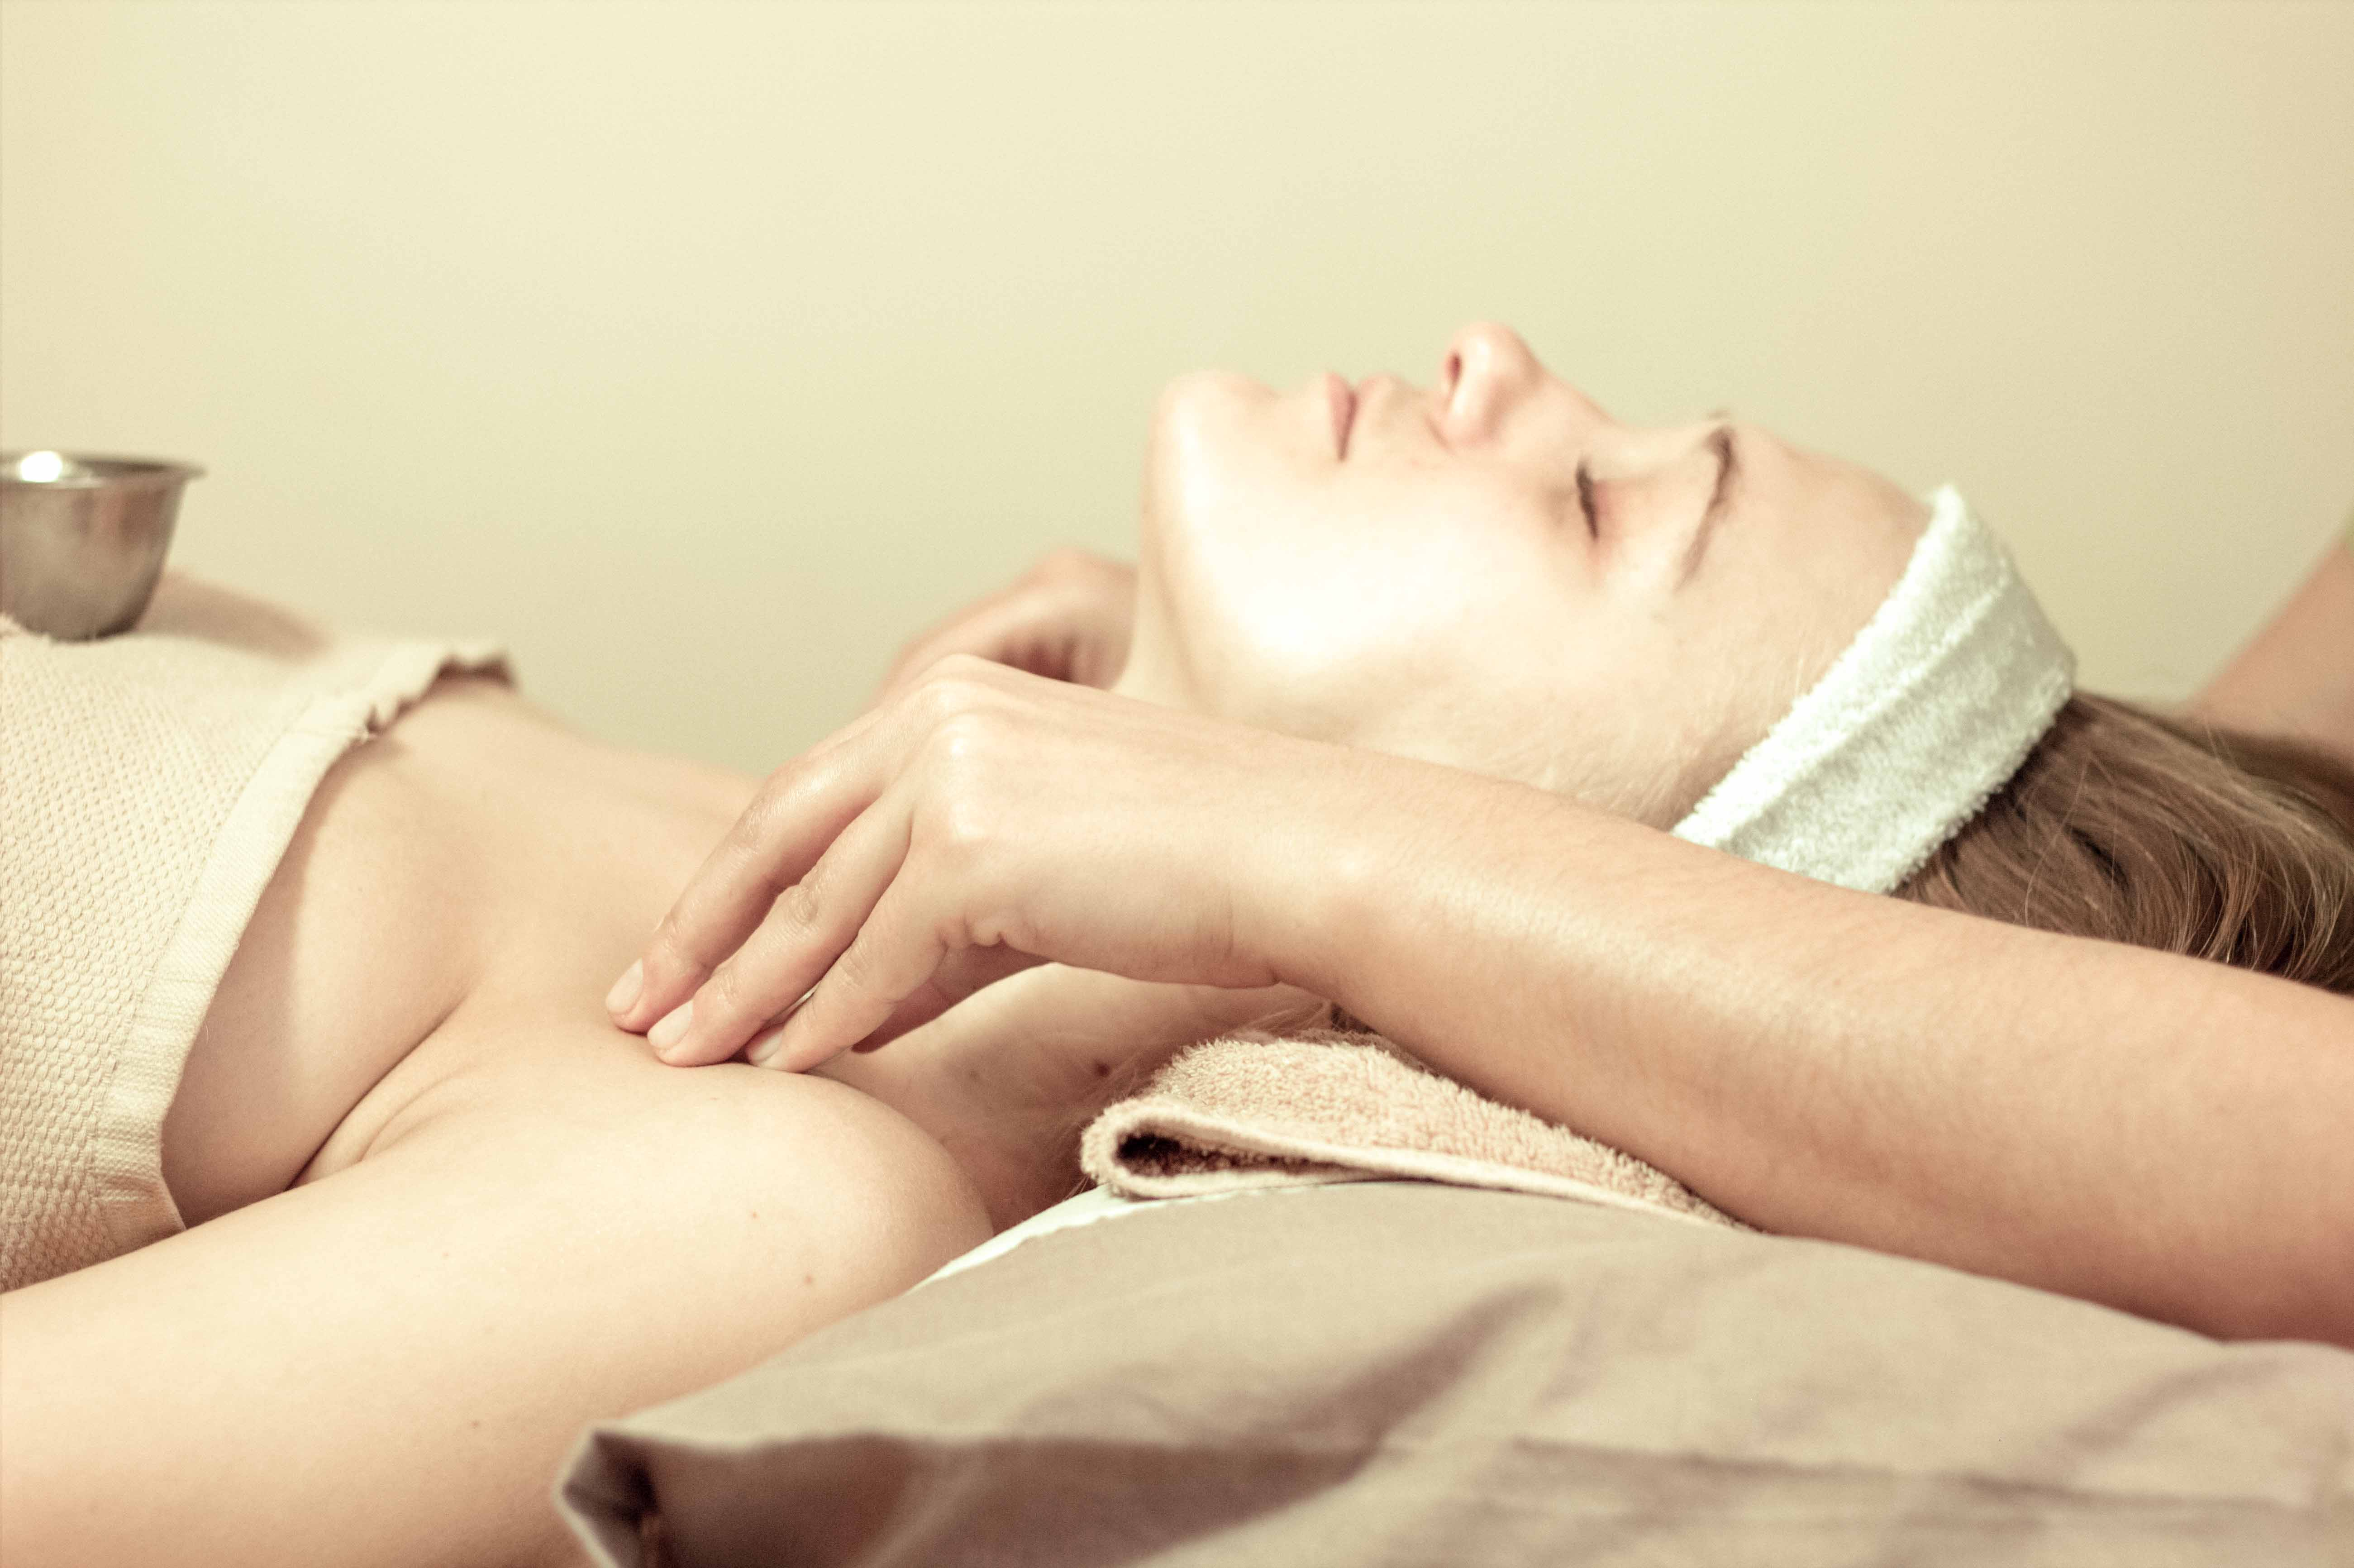 Beehive Healthcare | Massage, Chinese Massage, Liposculpture, Facial Peeling, Dermapens and Healthcare Treatments Chester | holistic complementary treatments massage in chester image